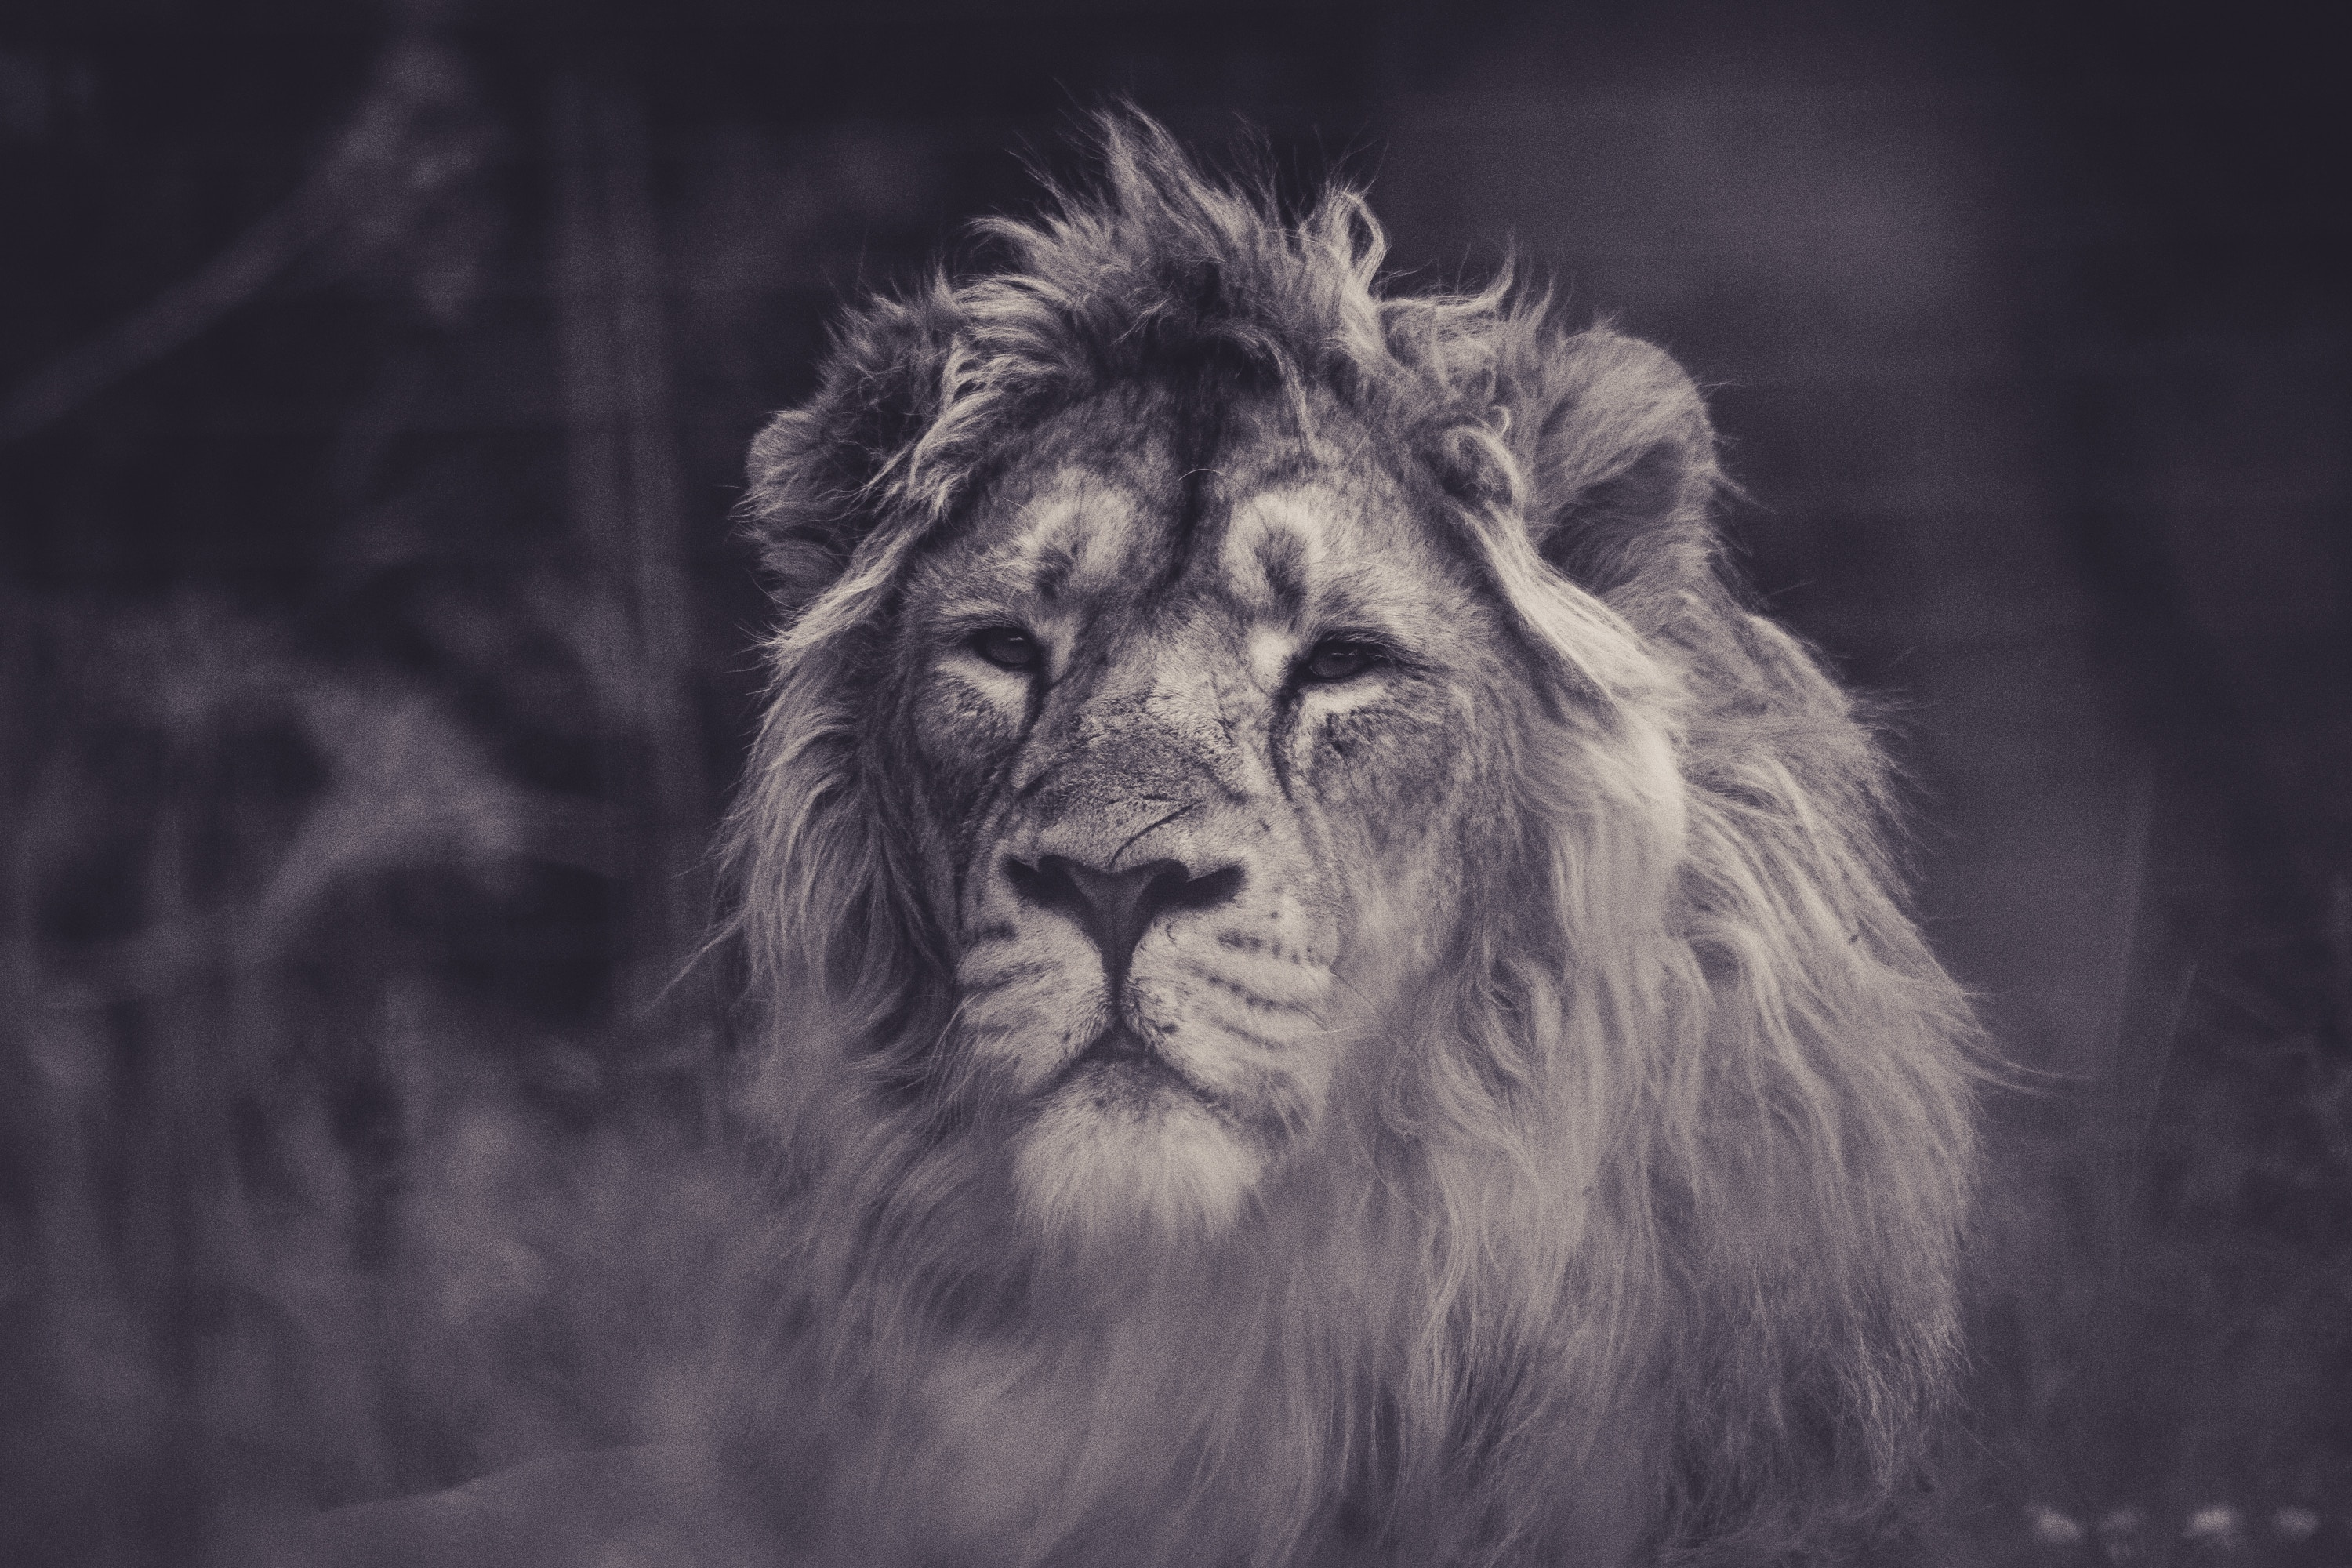 95218 download wallpaper Animals, Lion, Predator, Sight, Opinion, Bw, Chb, Mane screensavers and pictures for free